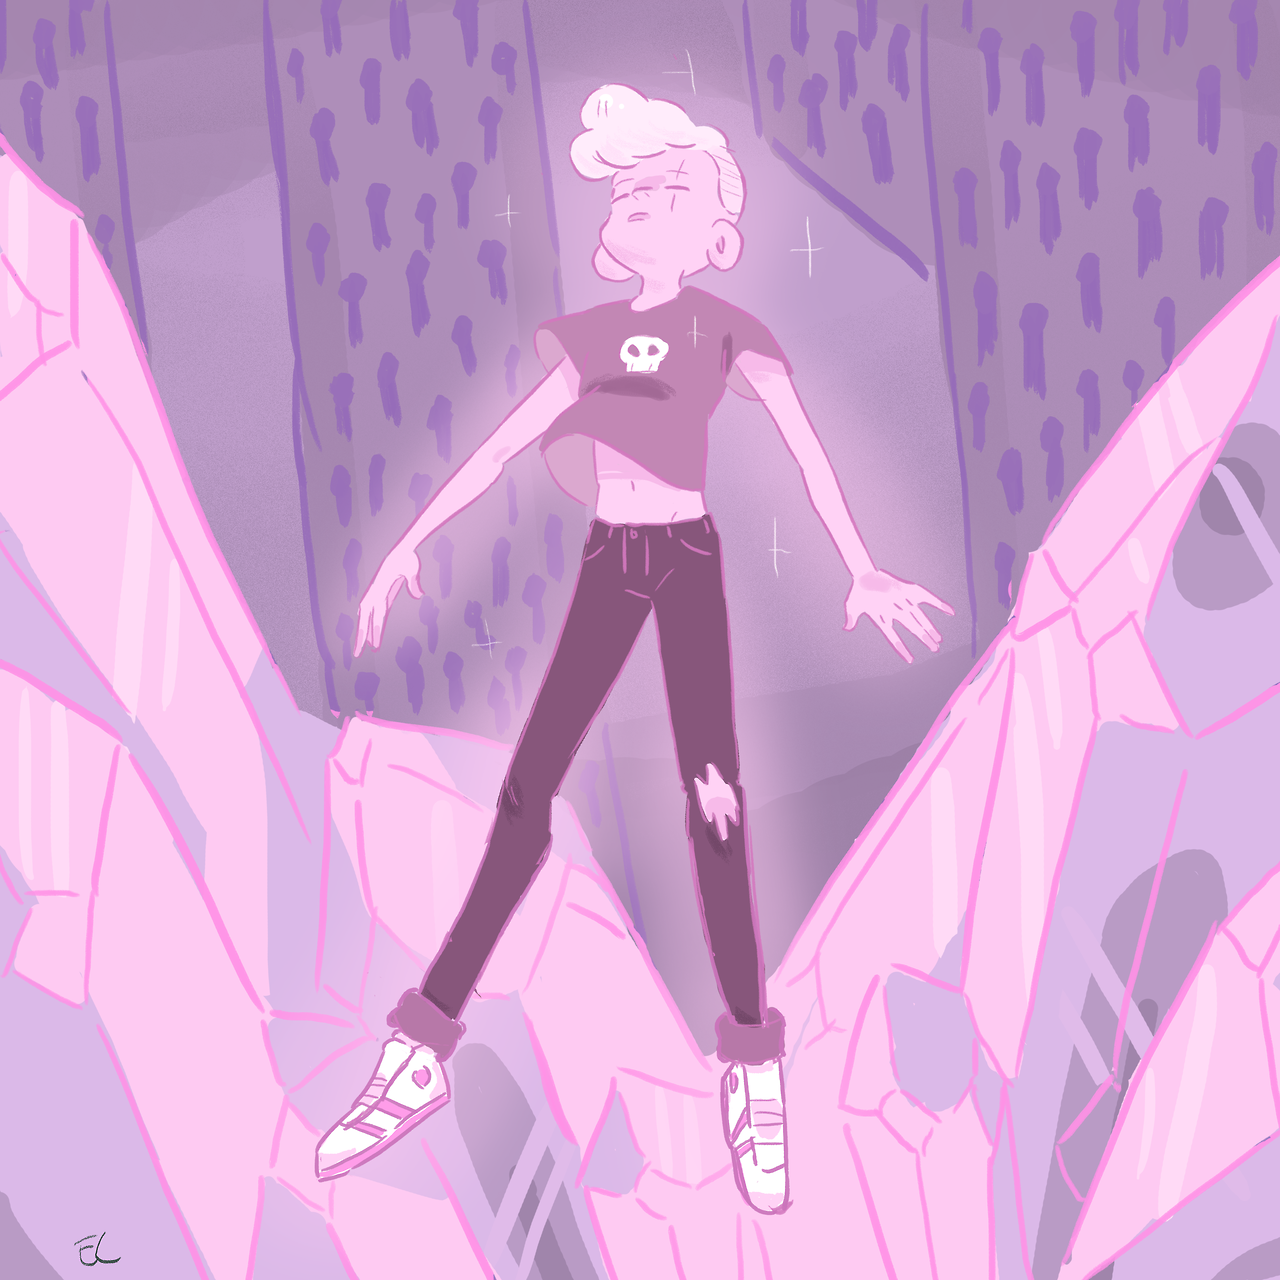 Fanart of that pink guy we all know and love